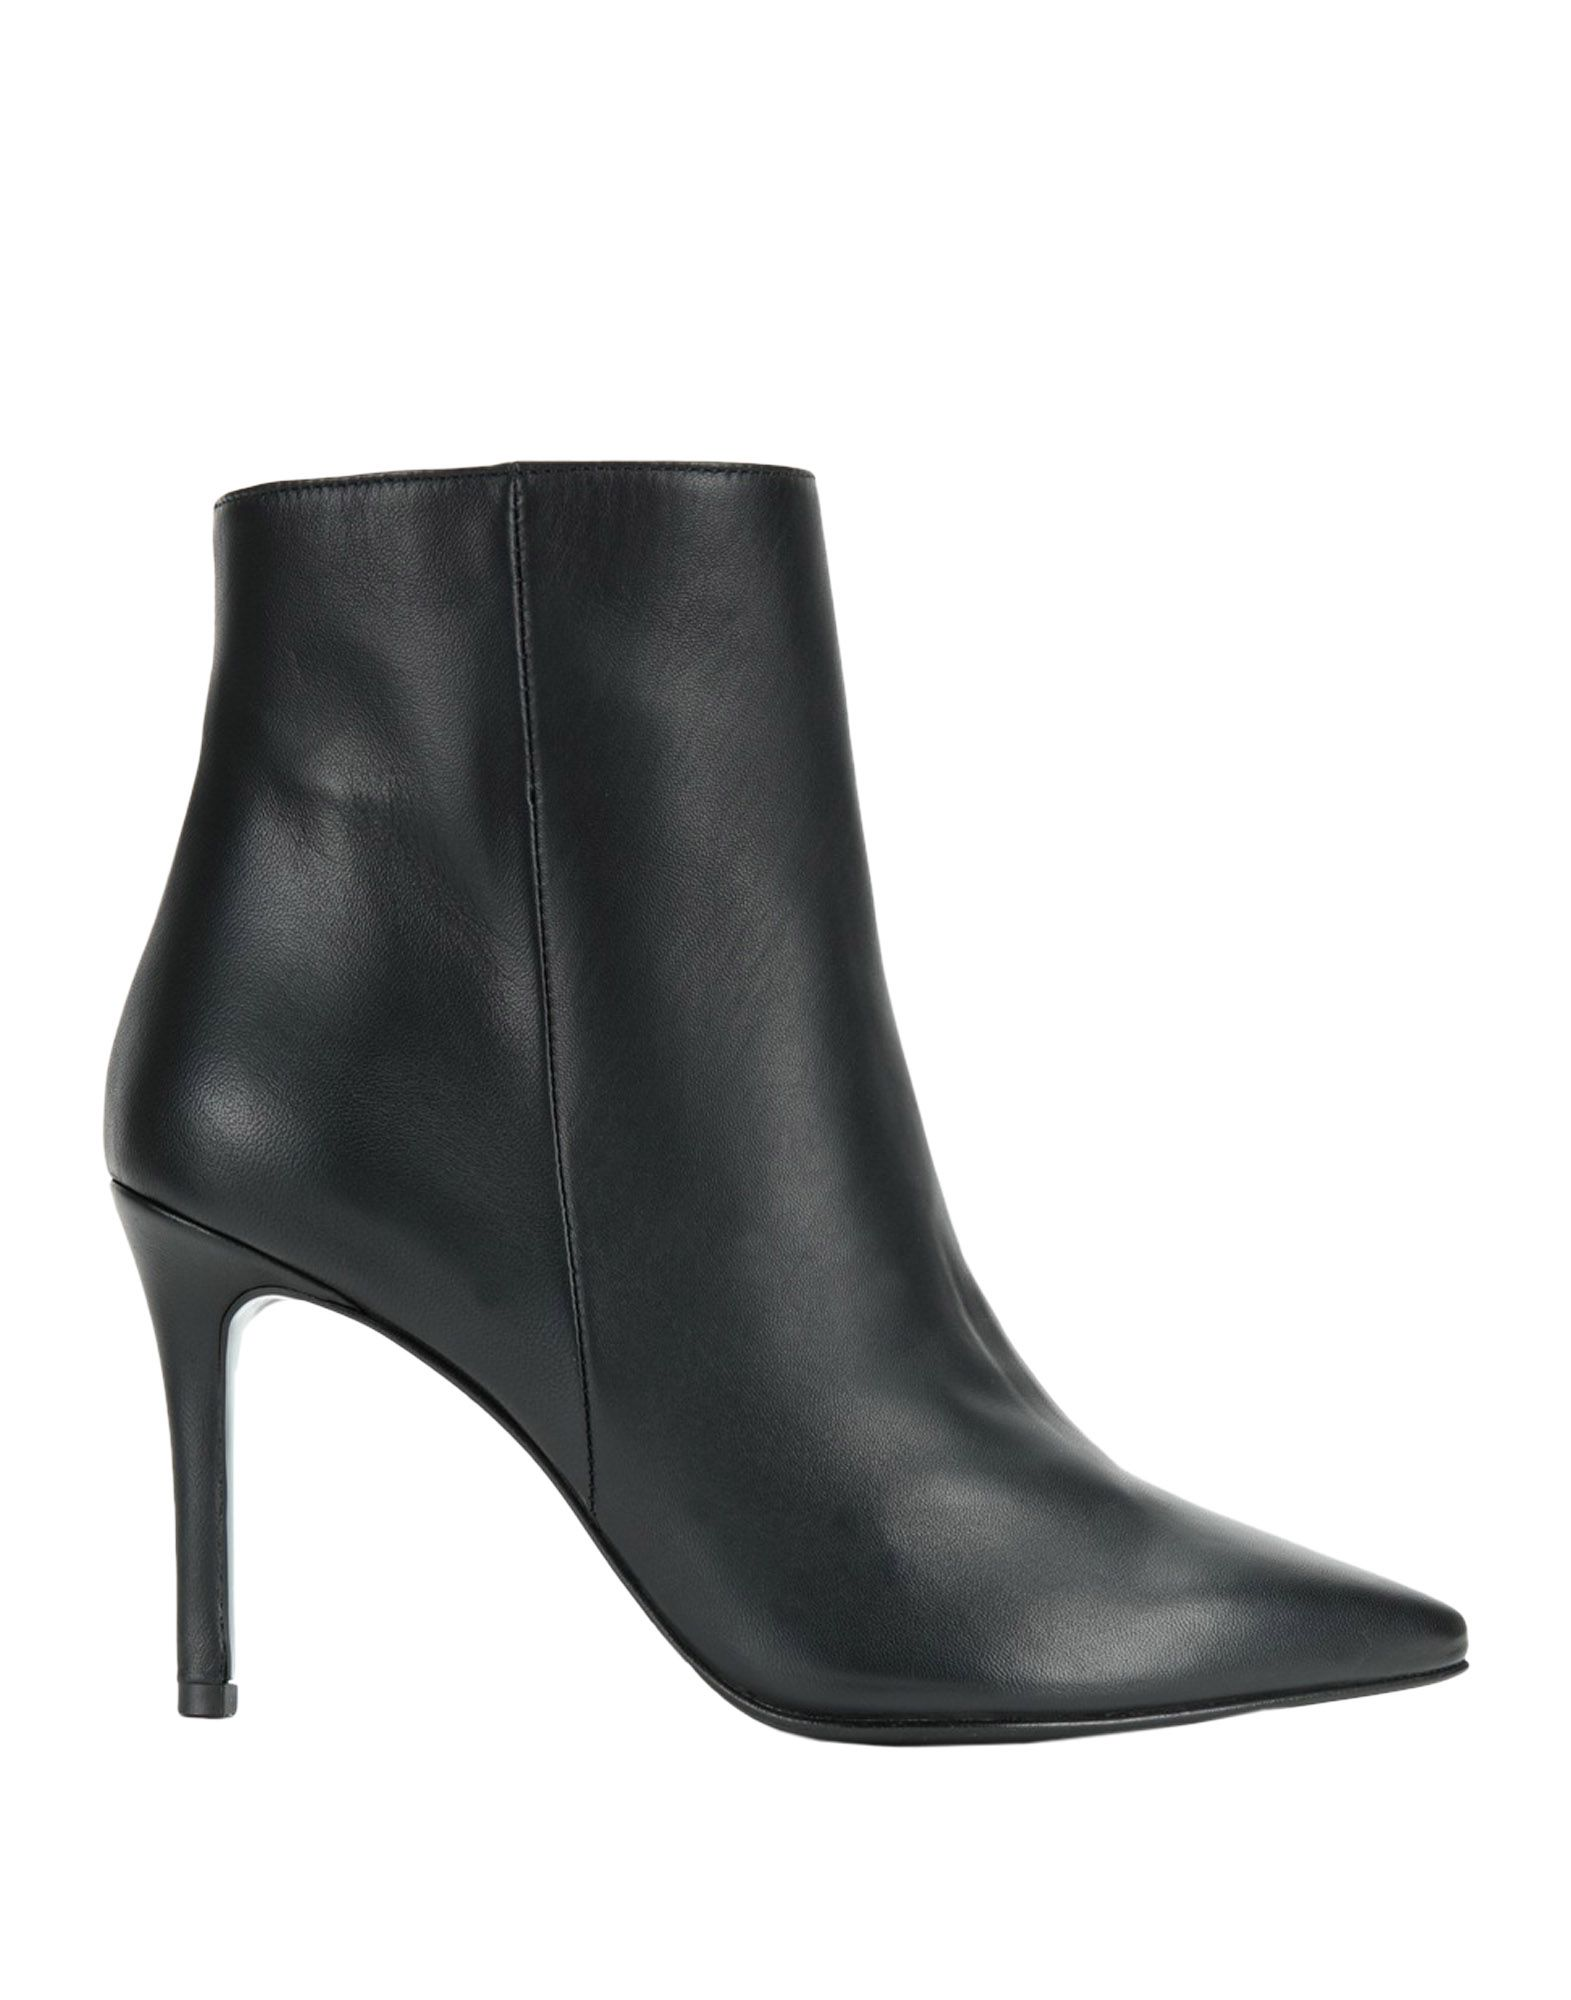 Stilvolle billige billige billige Schuhe Stephen Good  London Stiefelette Damen  11532566WB 5685a9